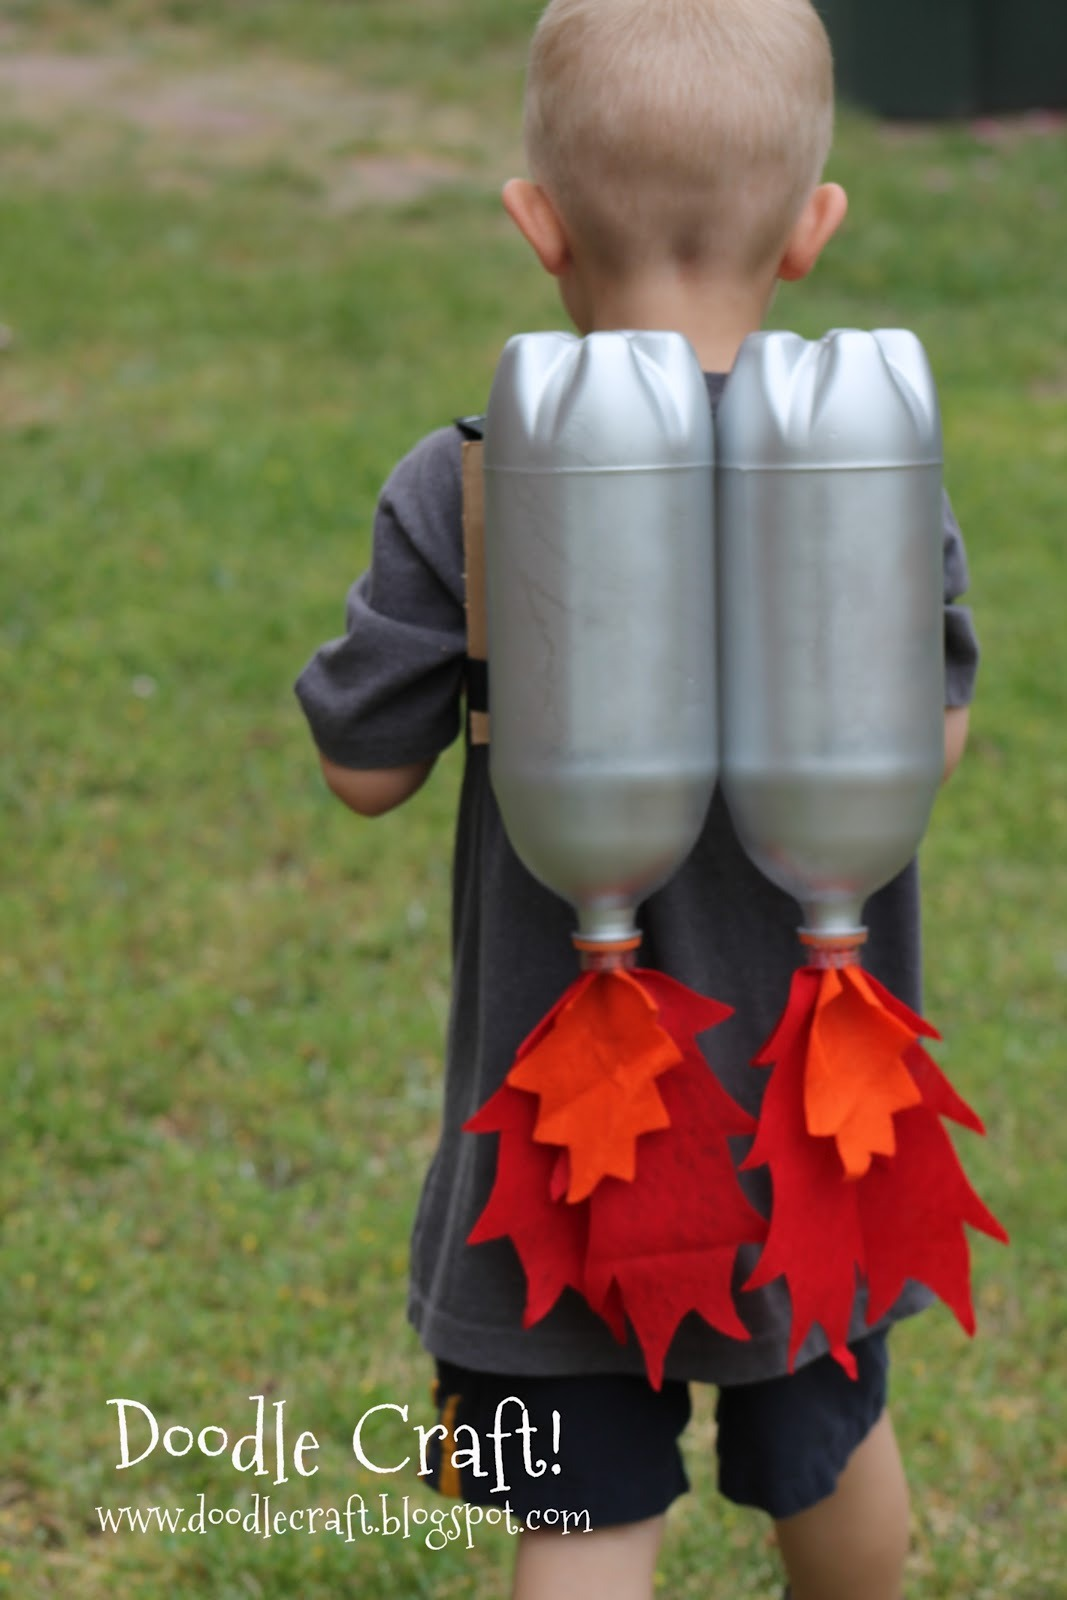 DIY Rocket Jet Pack.